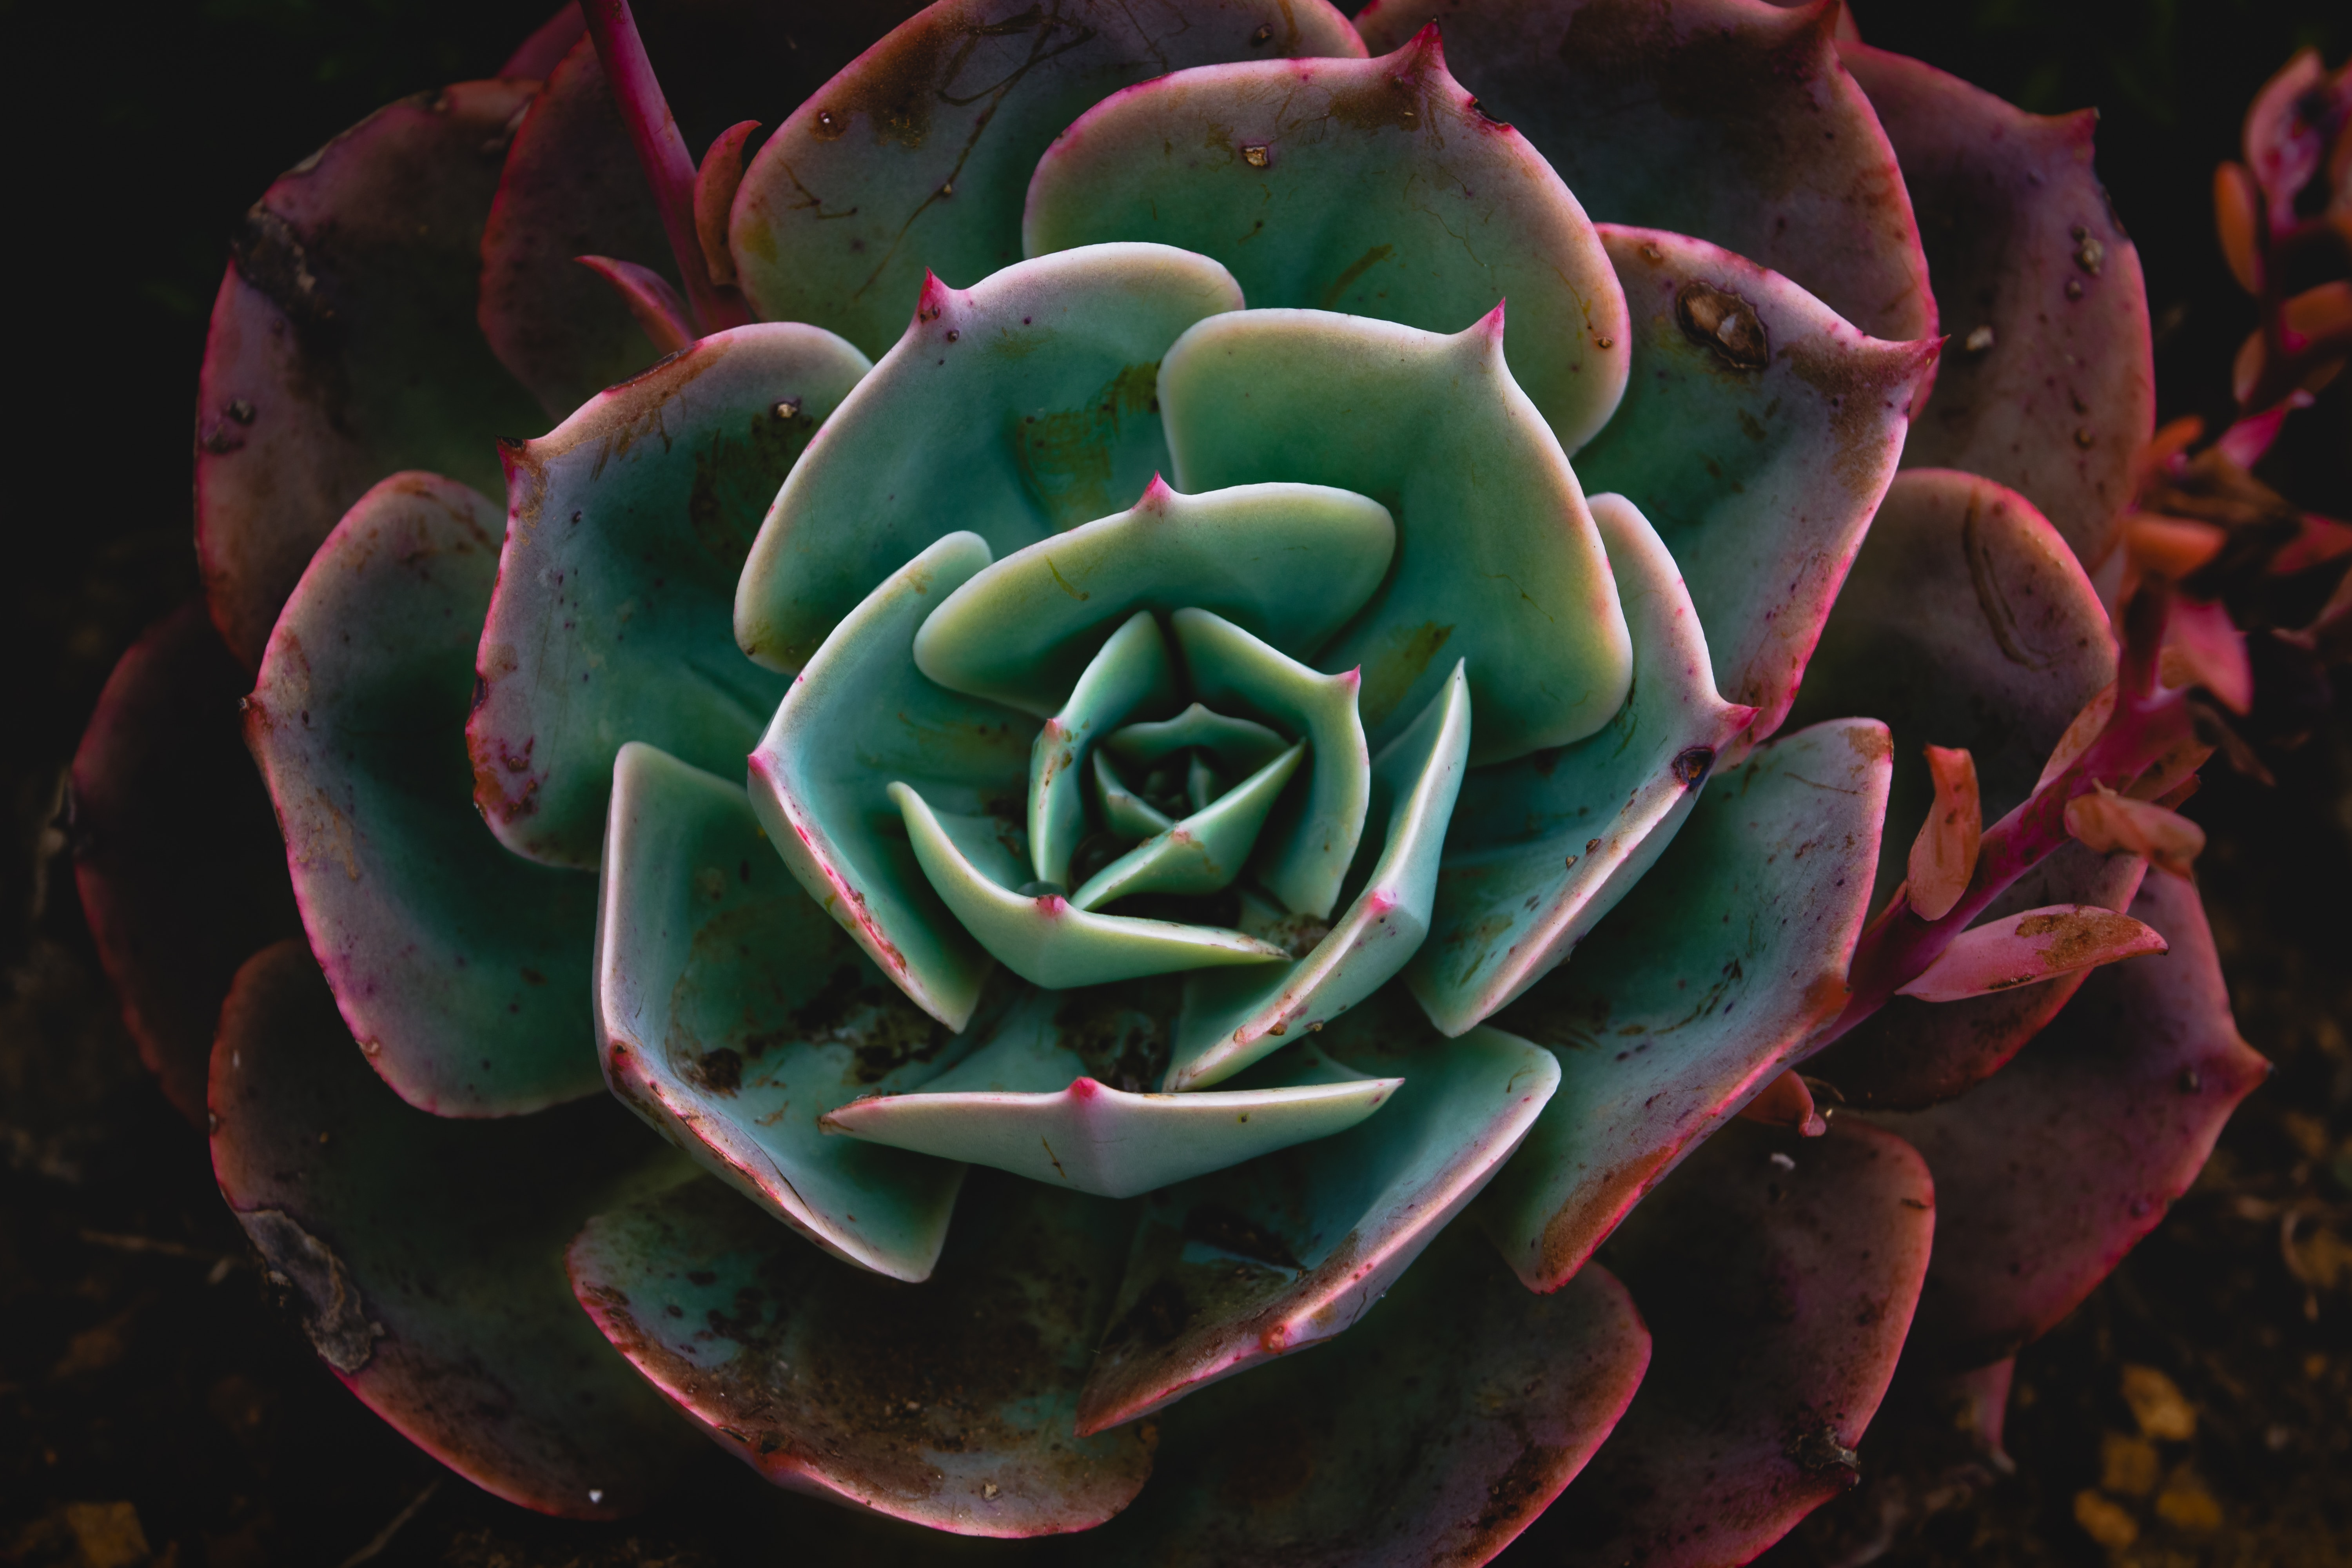 Popular Succulent images for mobile phone